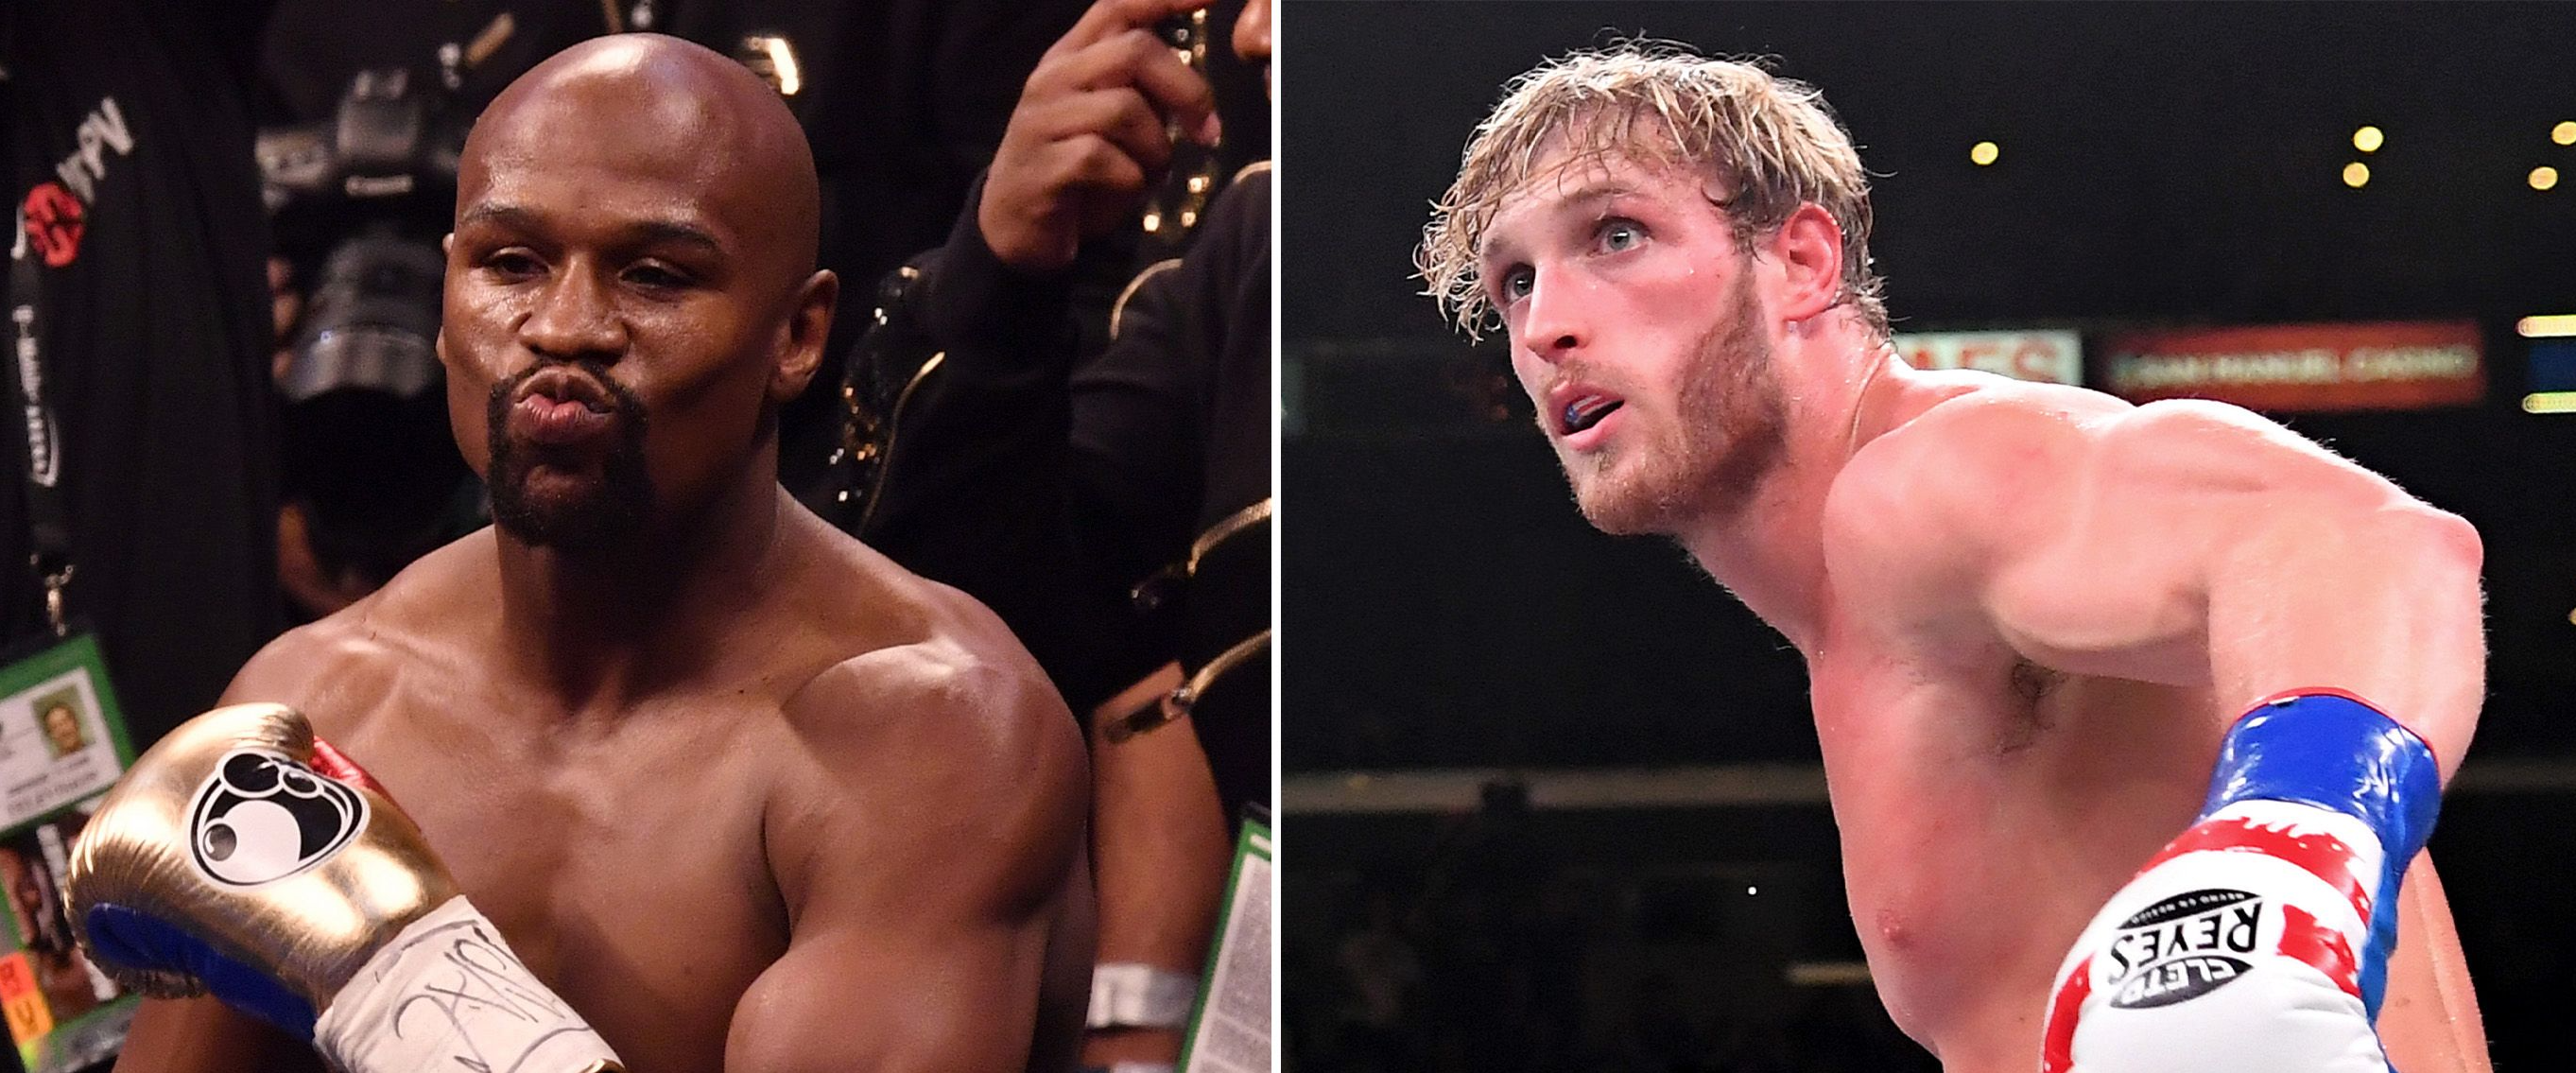 Floyd Mayweather and Jake Paul involved in altercation at press day in Miami!